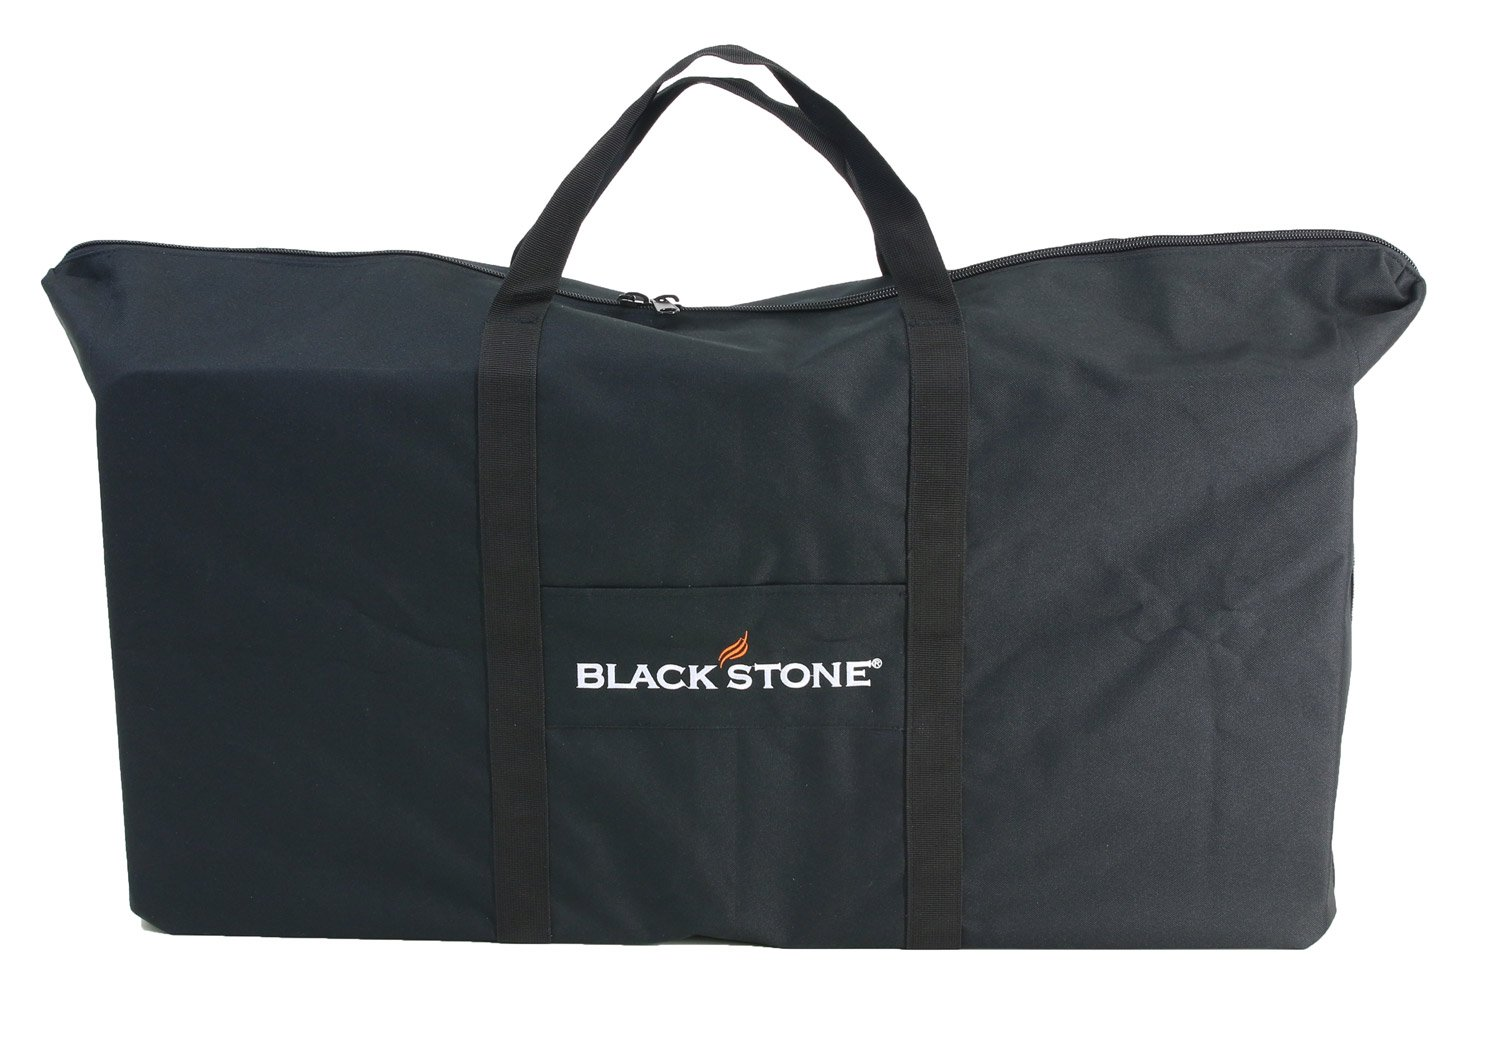 Blackstone Signature Griddle Accessories - Grill/Griddle Carry Bag - For 36 Inch Griddle Top or Grill Top - Heavy Duty 600 D Polyester - High Impact Resin by Blackstone